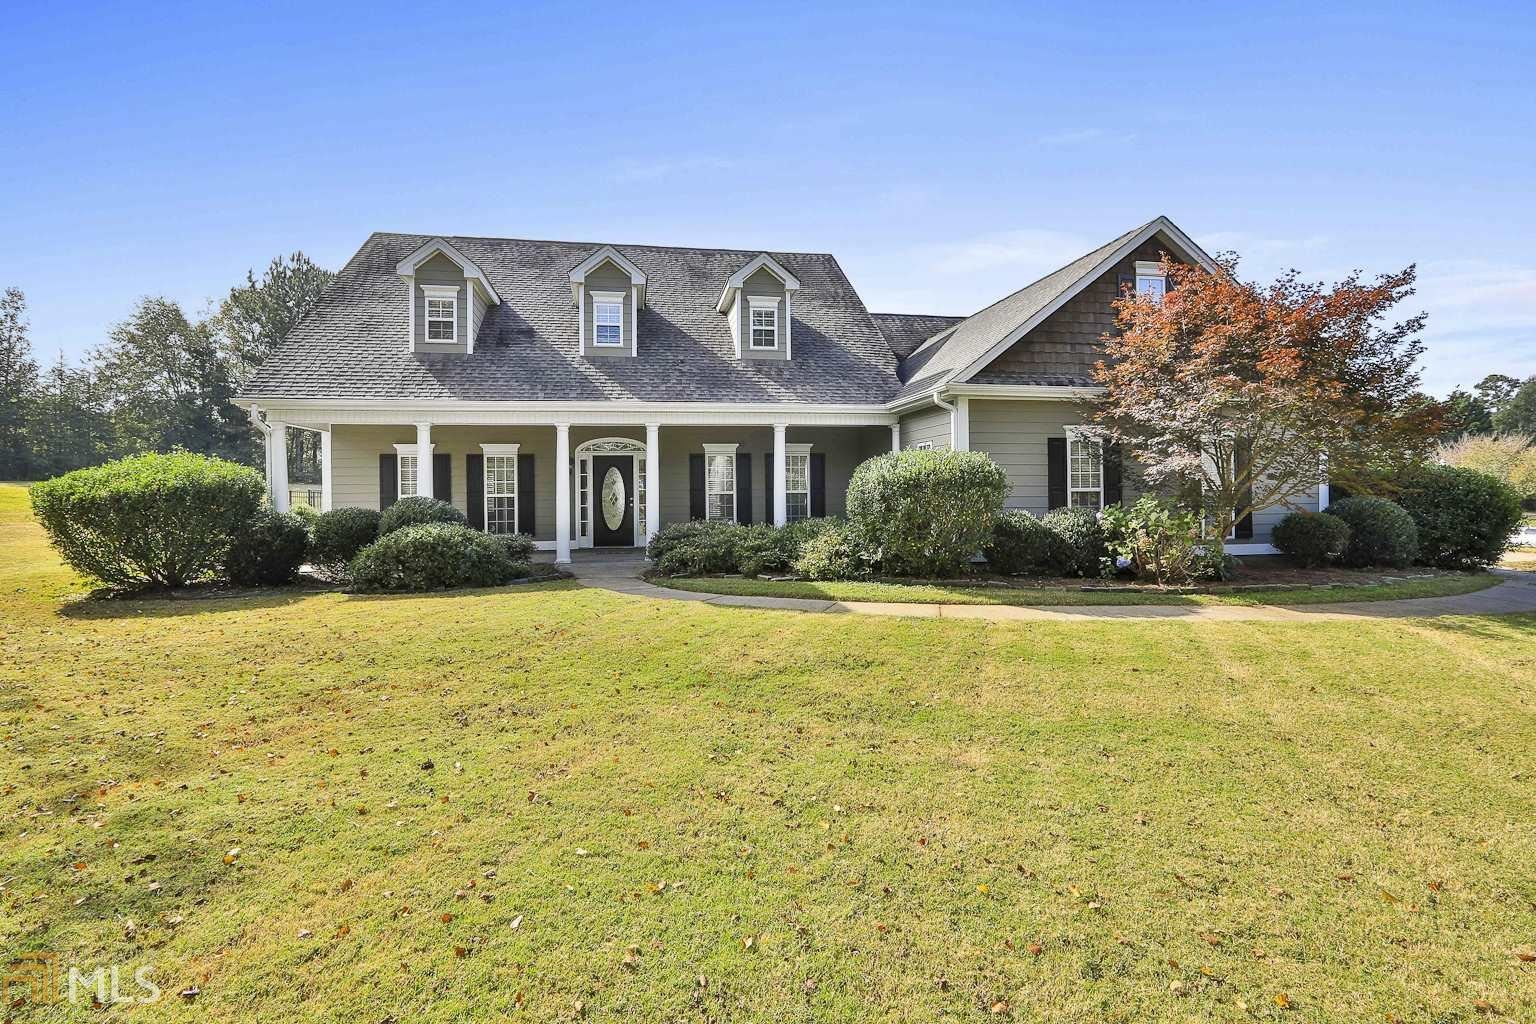 100 Clydesdale Ct, Tyrone, GA 30290 - #: 8869461